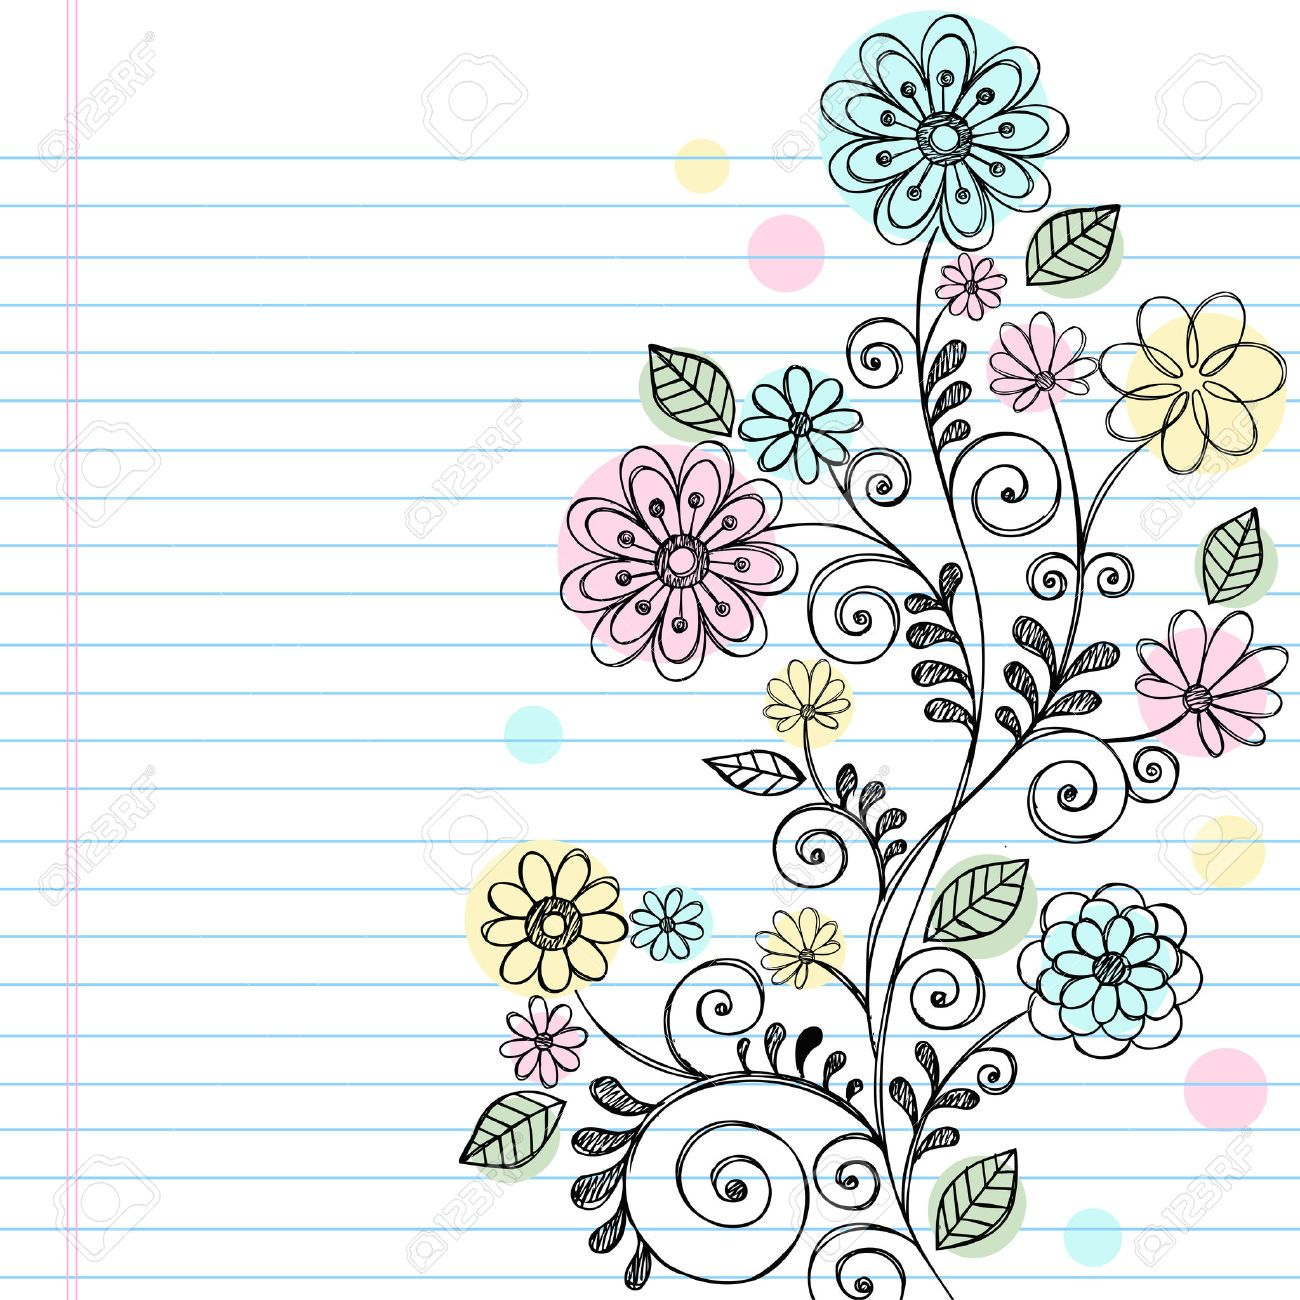 background cute notebook - Google Search   backgrounds ...